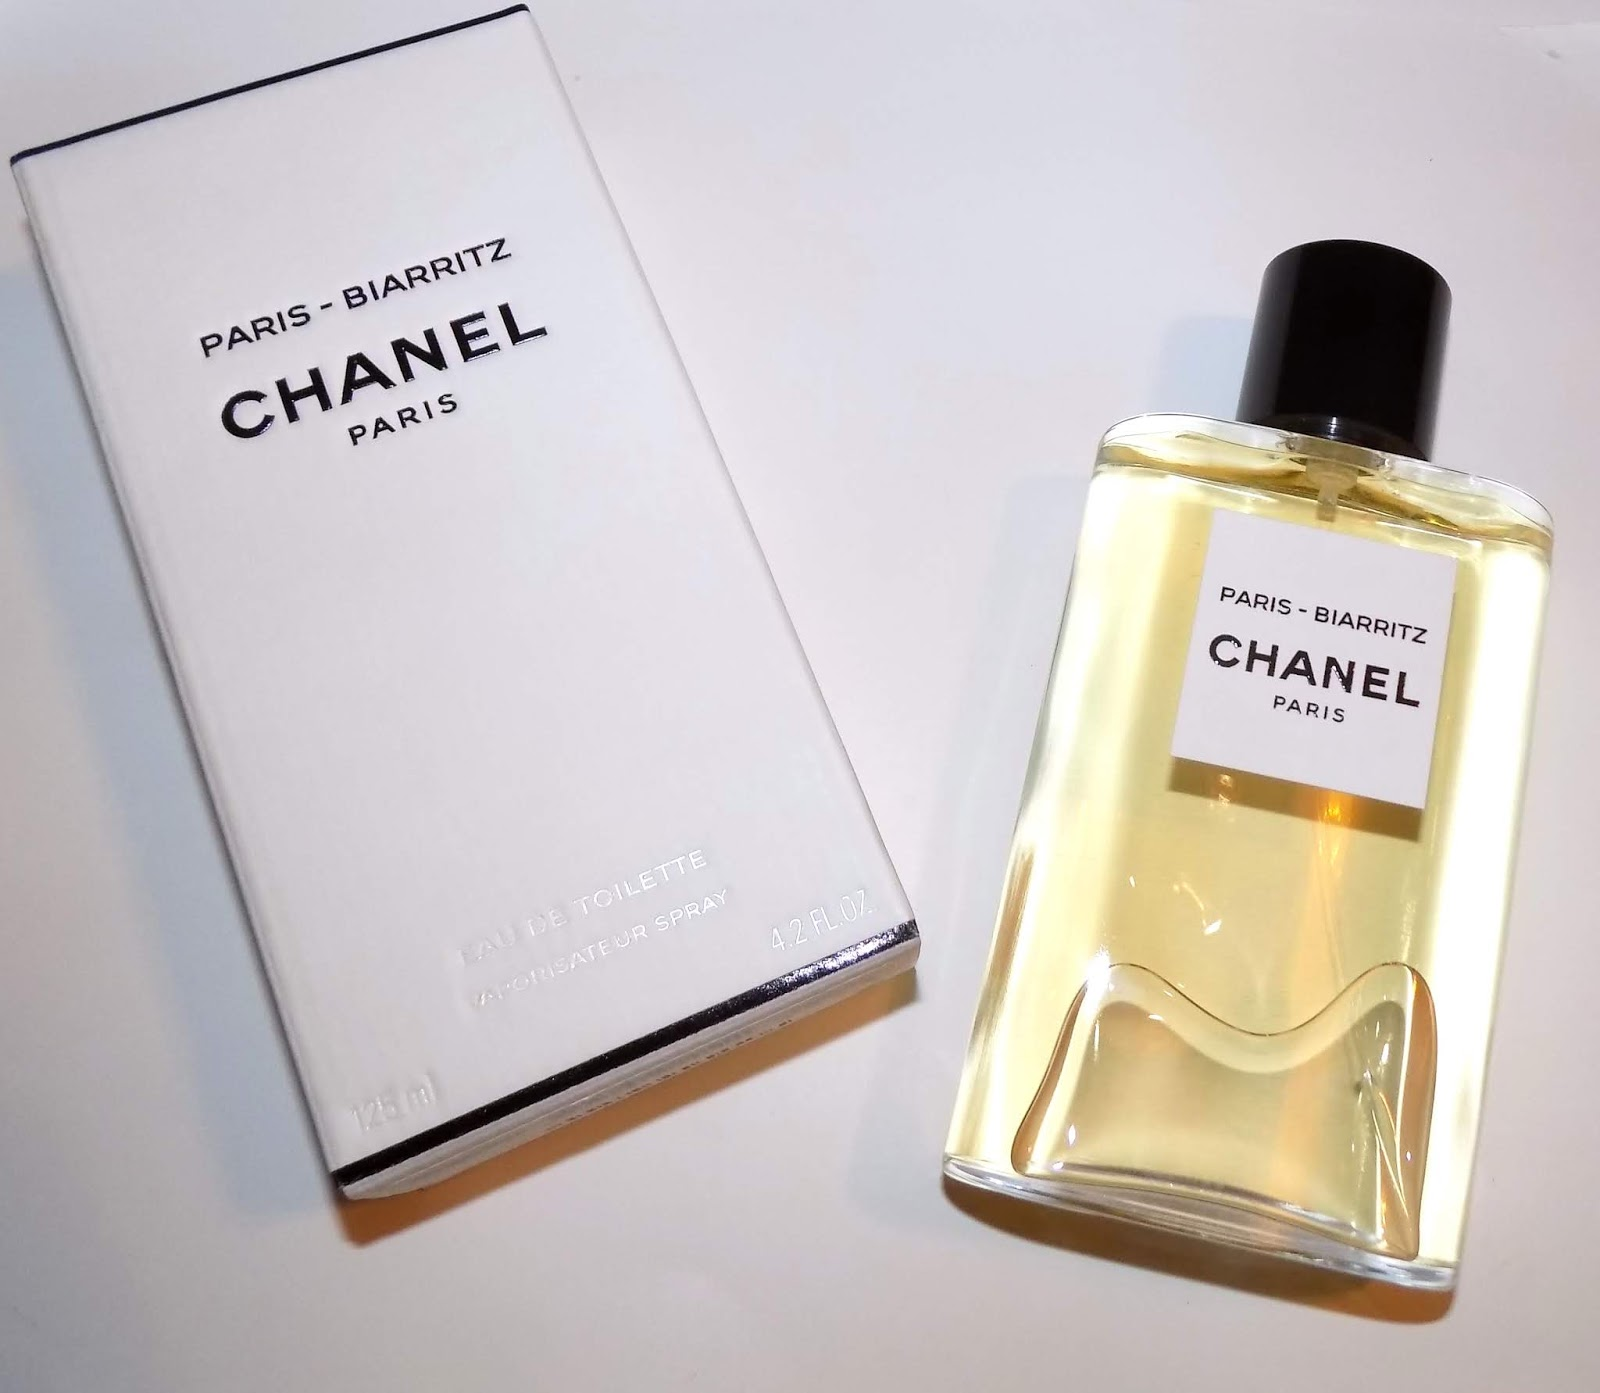 c3d1cba535 The Beauty Alchemist: Chanel Paris- Biarritz EDT - Les Eaux de Chanel